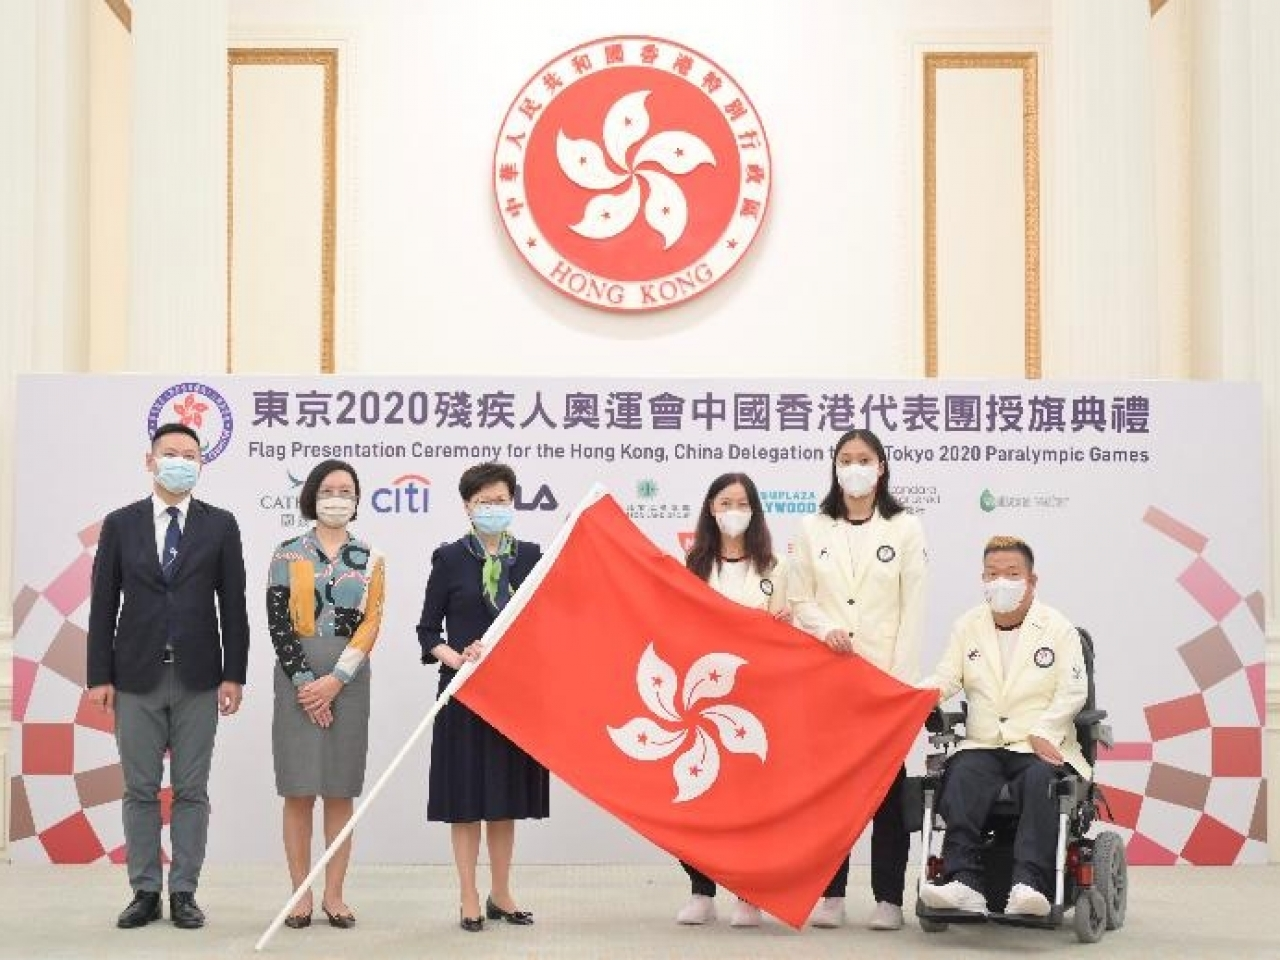 The CE said the Hong Kong team's best-ever results in the Tokyo Olympics had created an ideal atmosphere for the Paralympians. Photo courtesy: ISD